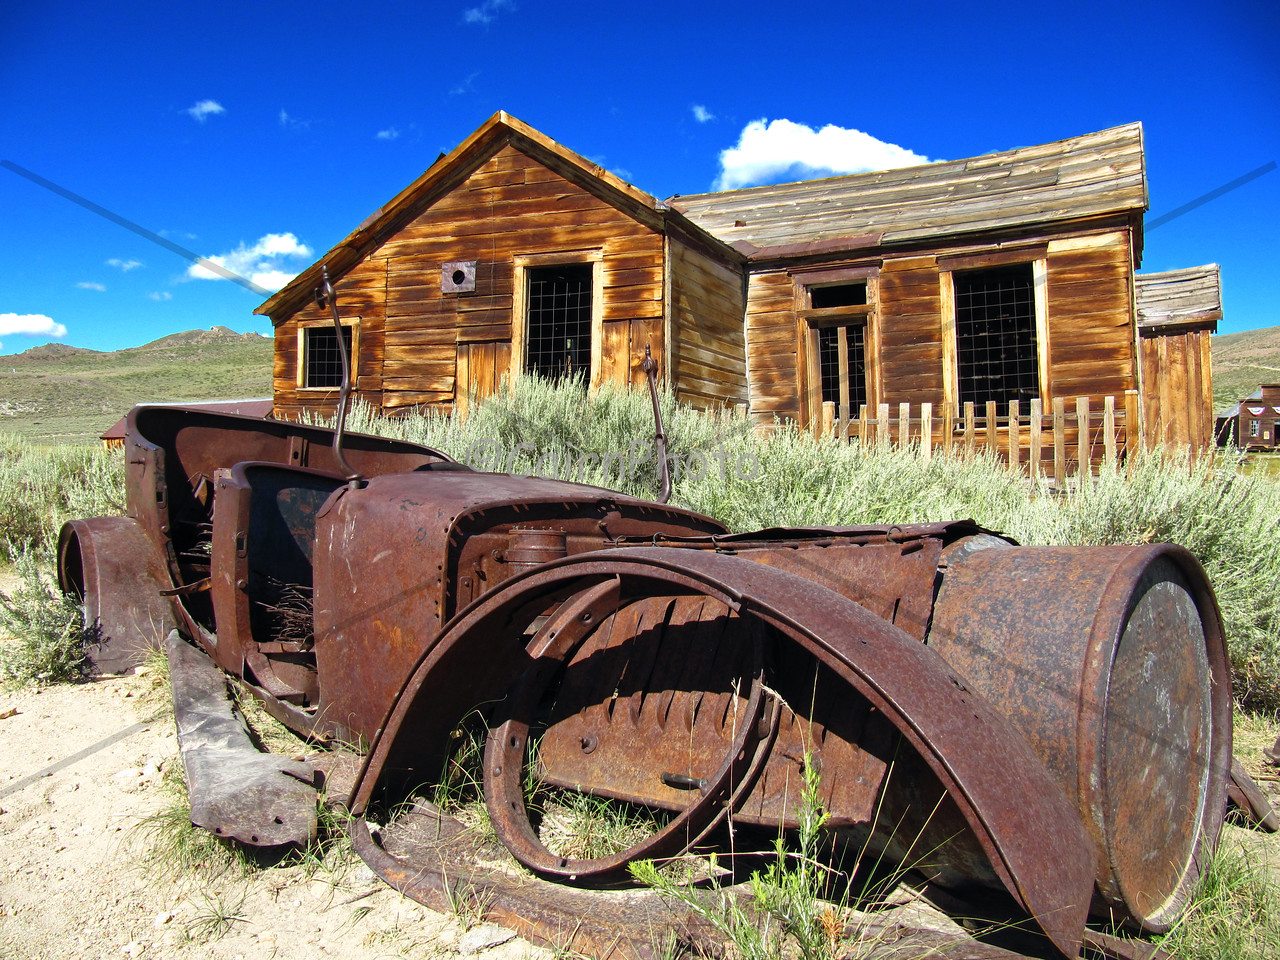 An abandoned car in front of a house in Bodie.  I can only imagine living here and driving up to my house in this car.